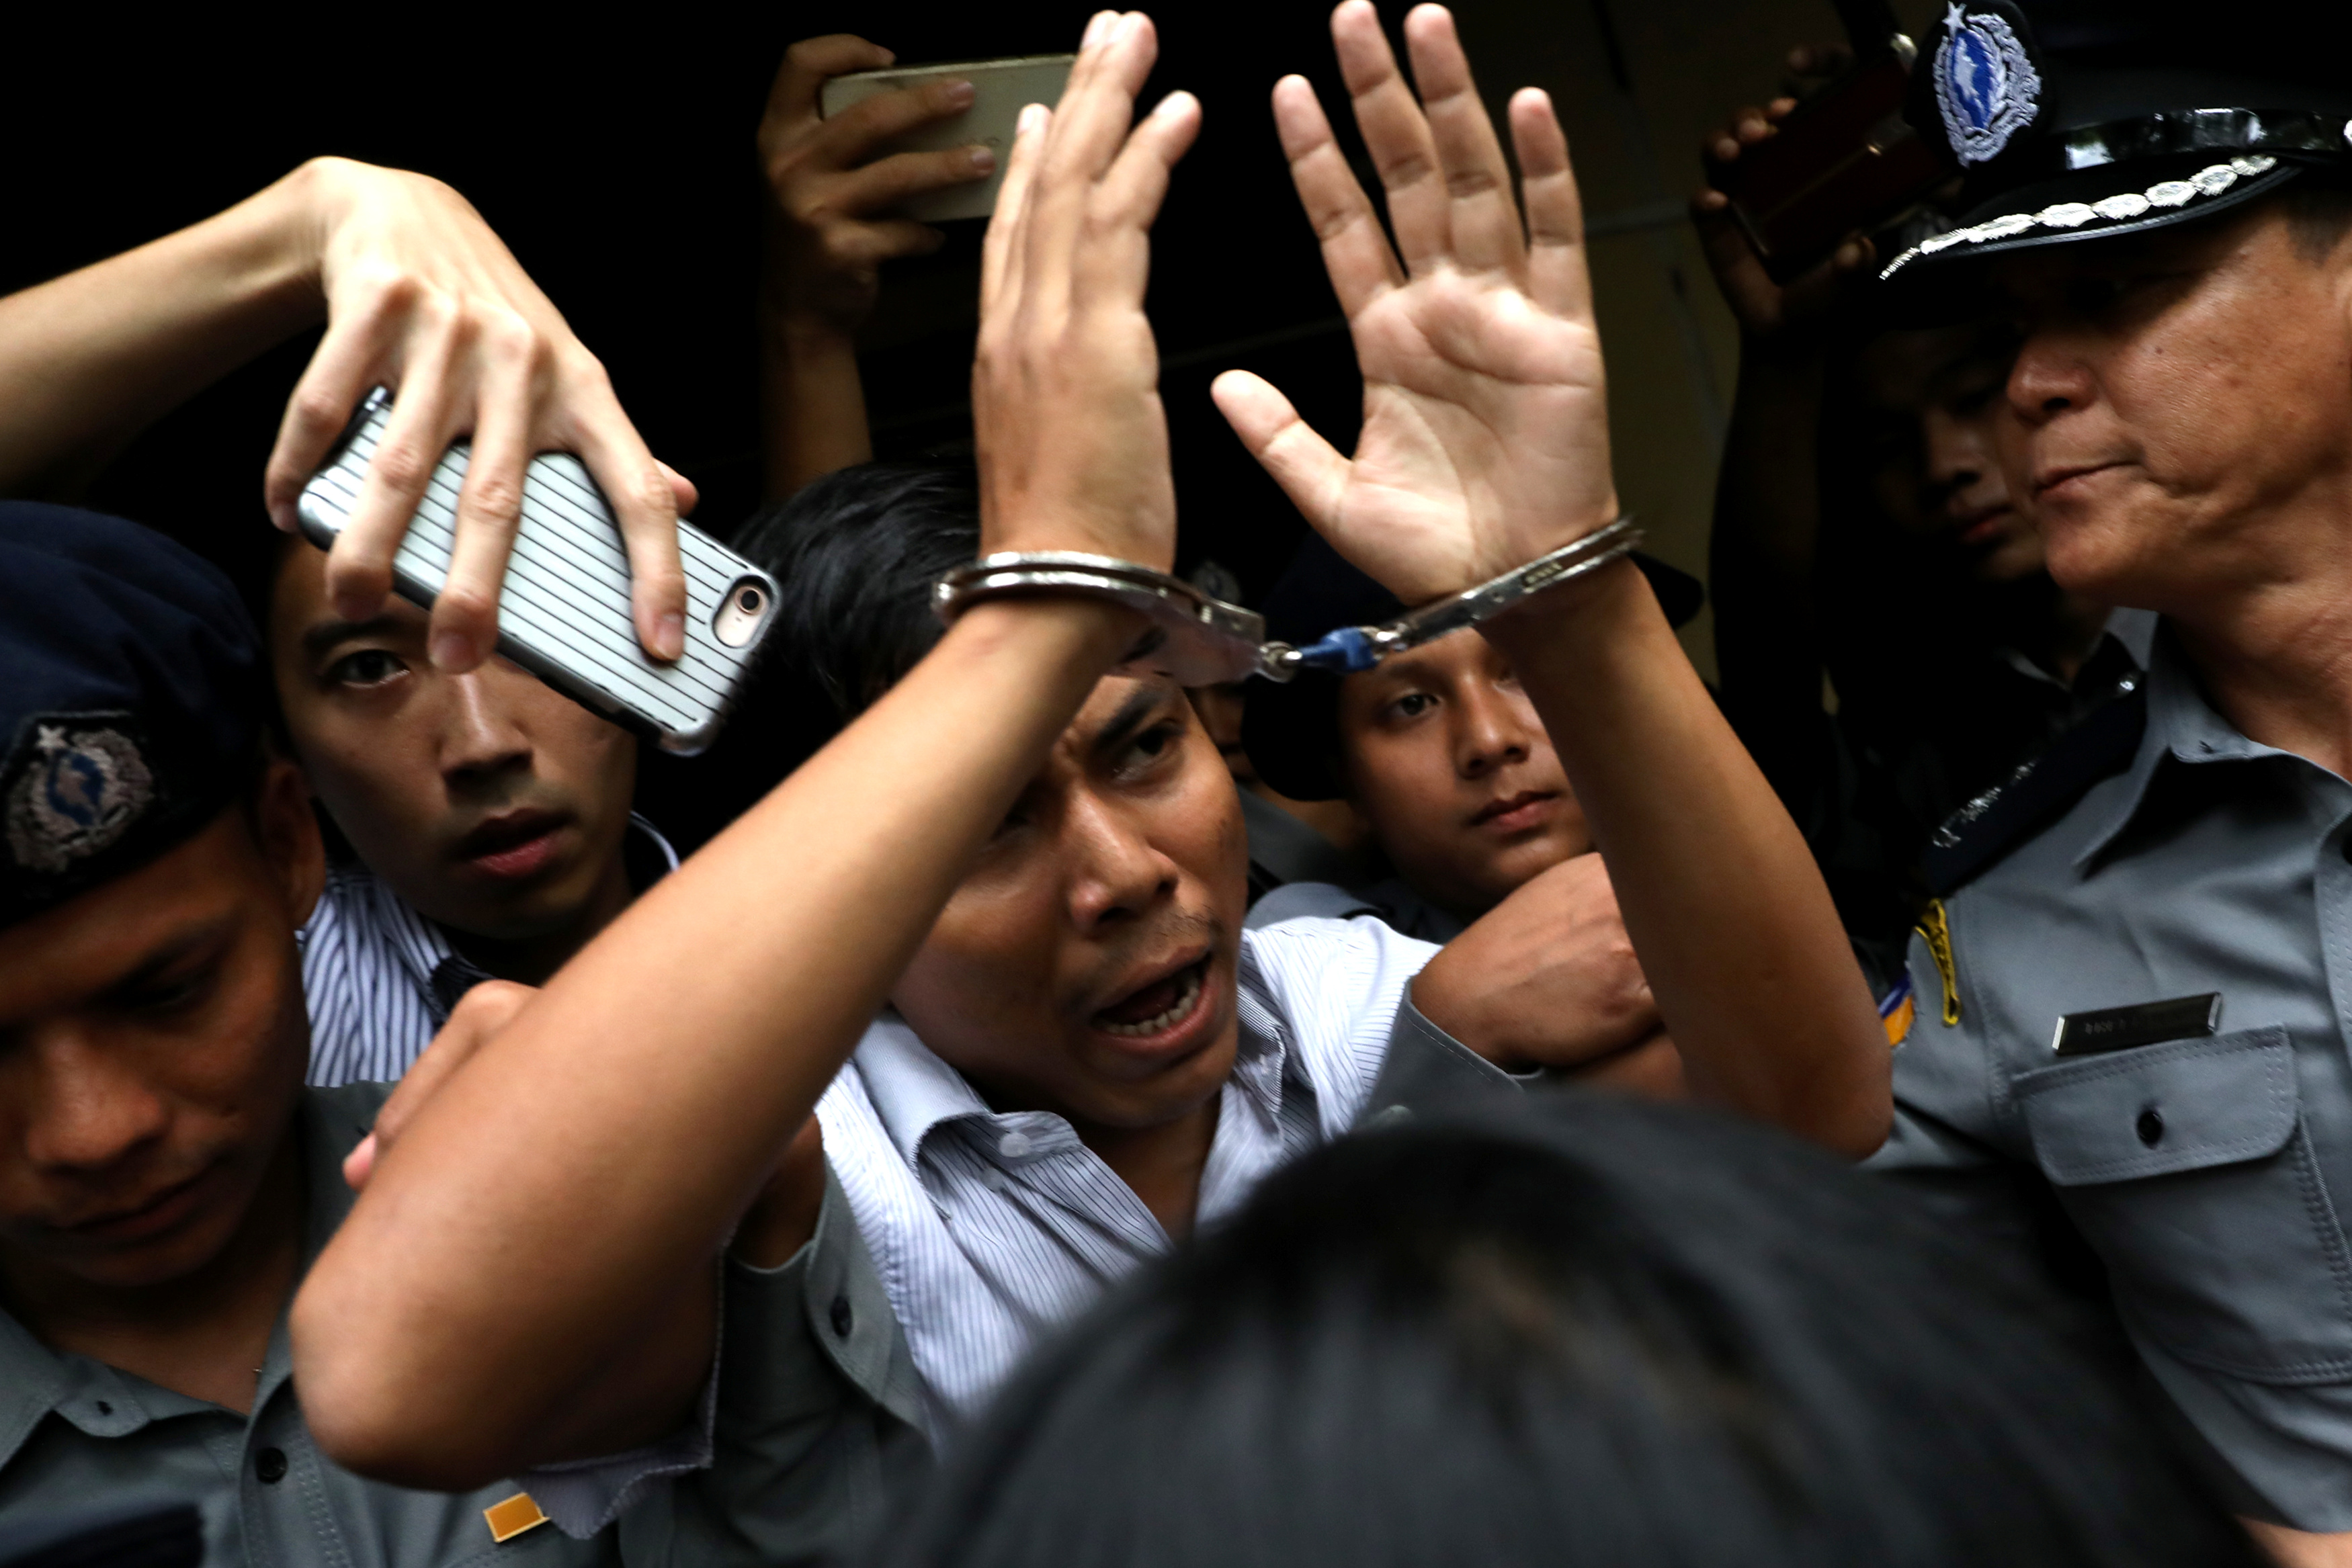 ournalist Kyaw Soe Oo is escorted from court after his verdict in Yangon, Myanmar on Sept. 3, 2018.